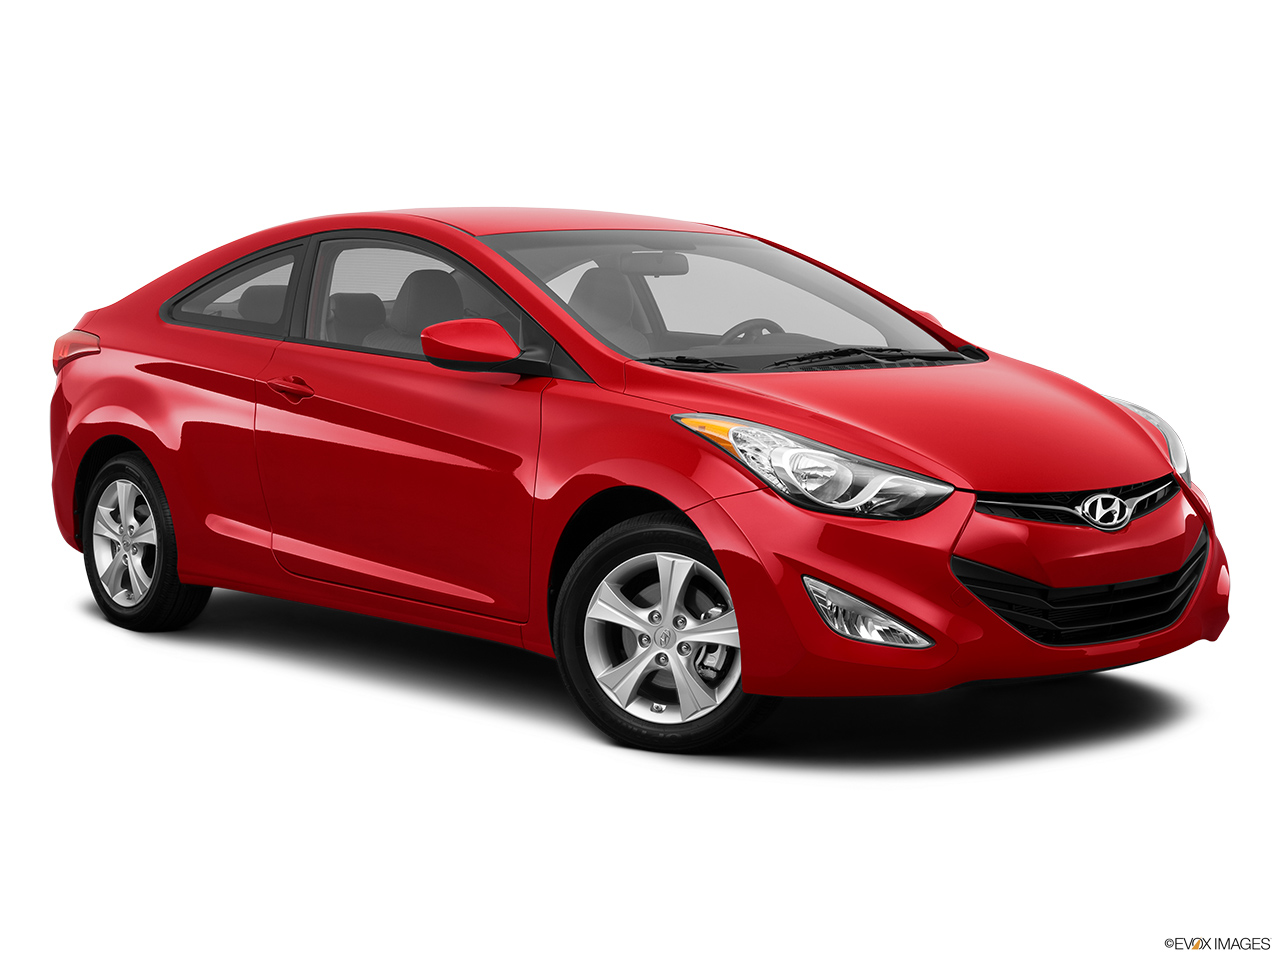 2013 hyundai elantra coupe 2dr manual gs. Black Bedroom Furniture Sets. Home Design Ideas